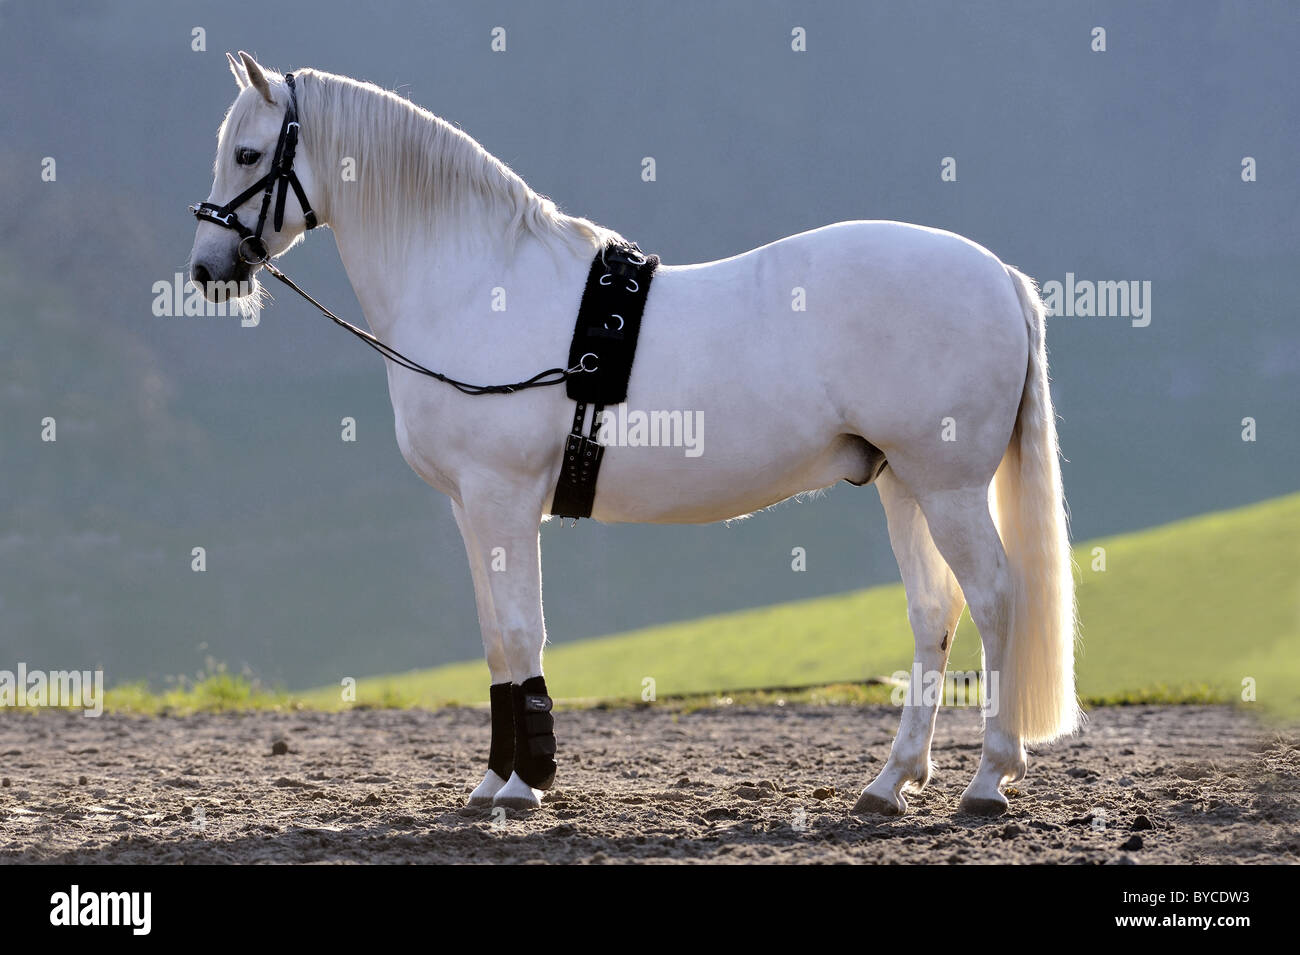 Andalusian Horse (Equus ferus caballus) ready for longeing. Stock Photo